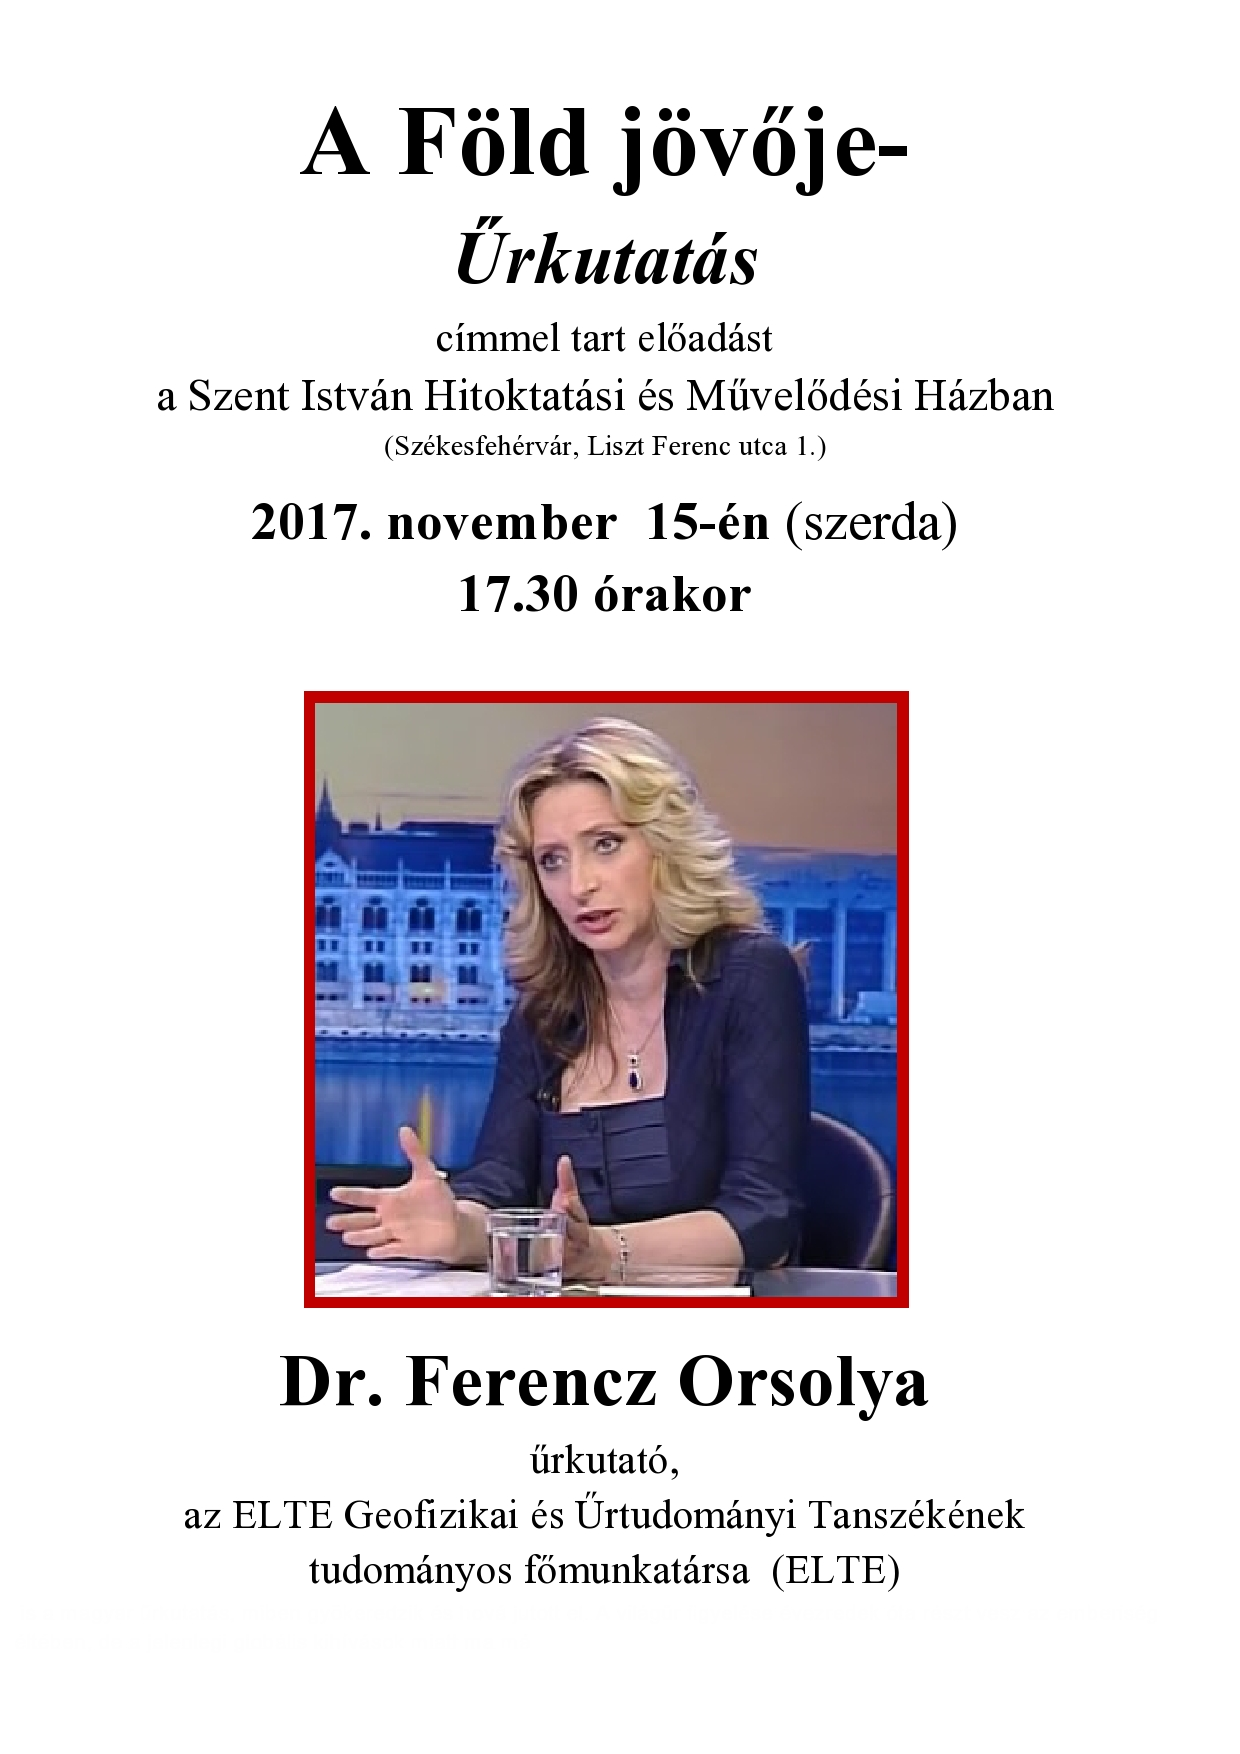 http://szentistvanmuvelodesihaz.hu/wp-content/uploads/2017/06/Dr.-Ferencz-Orsolya-el%C5%91ad%C3%A1sa.jpg